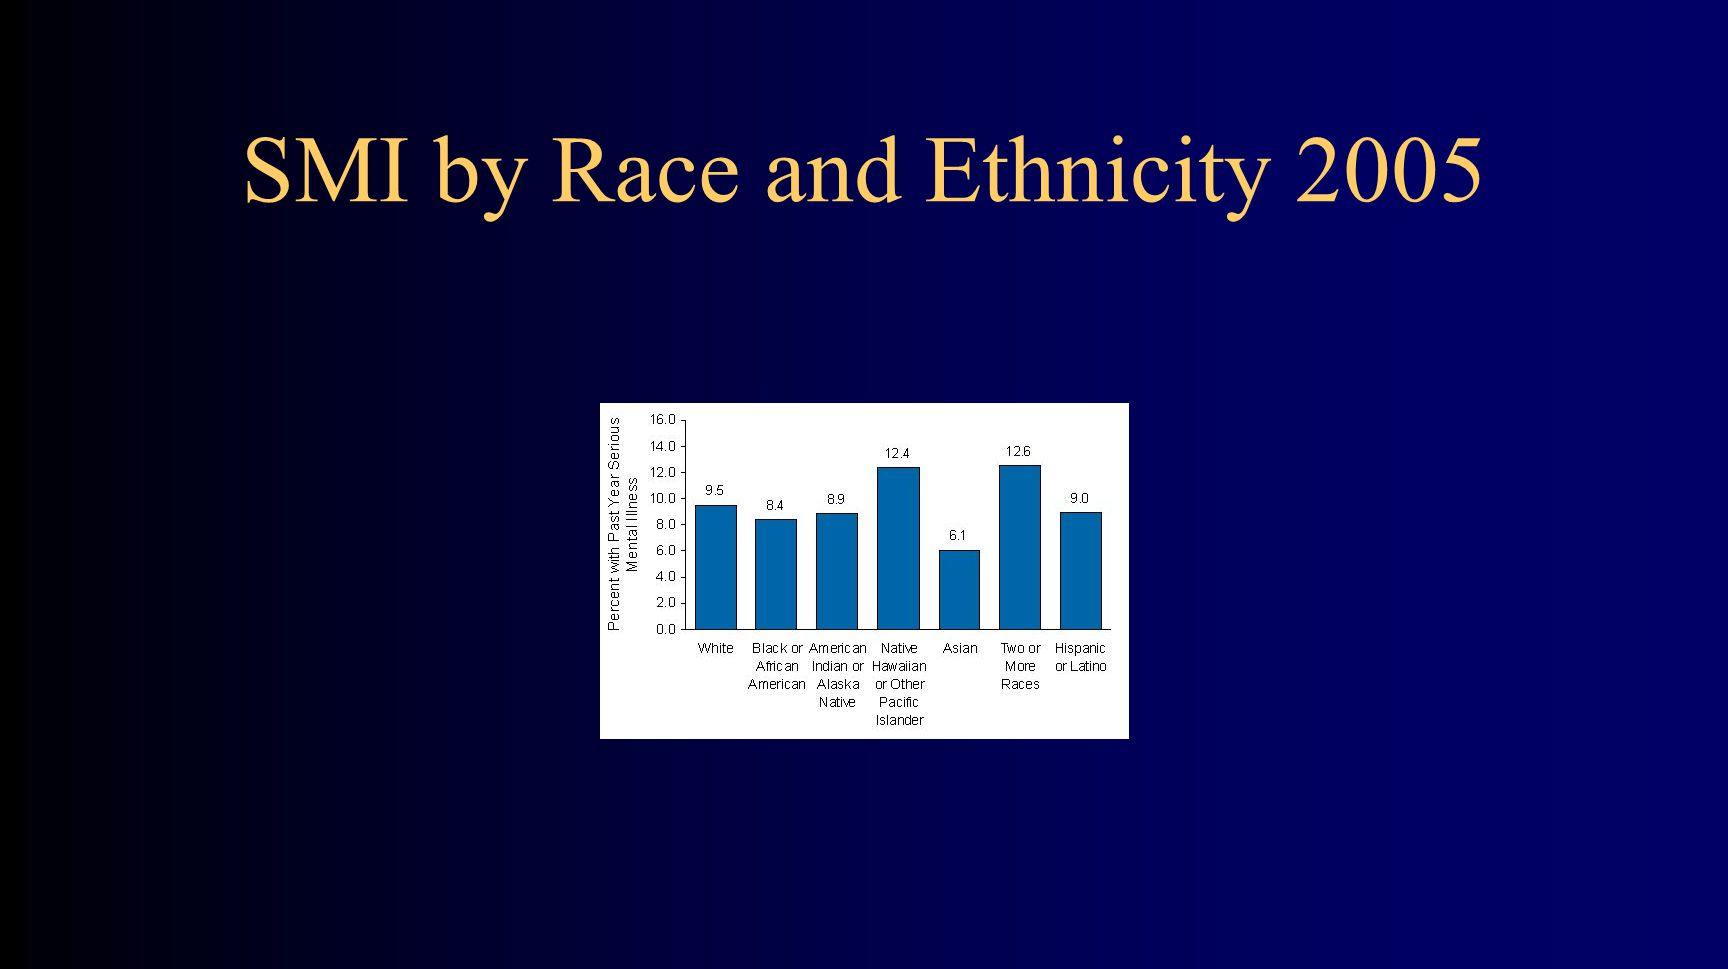 SMI by Race and Ethnicity 2005